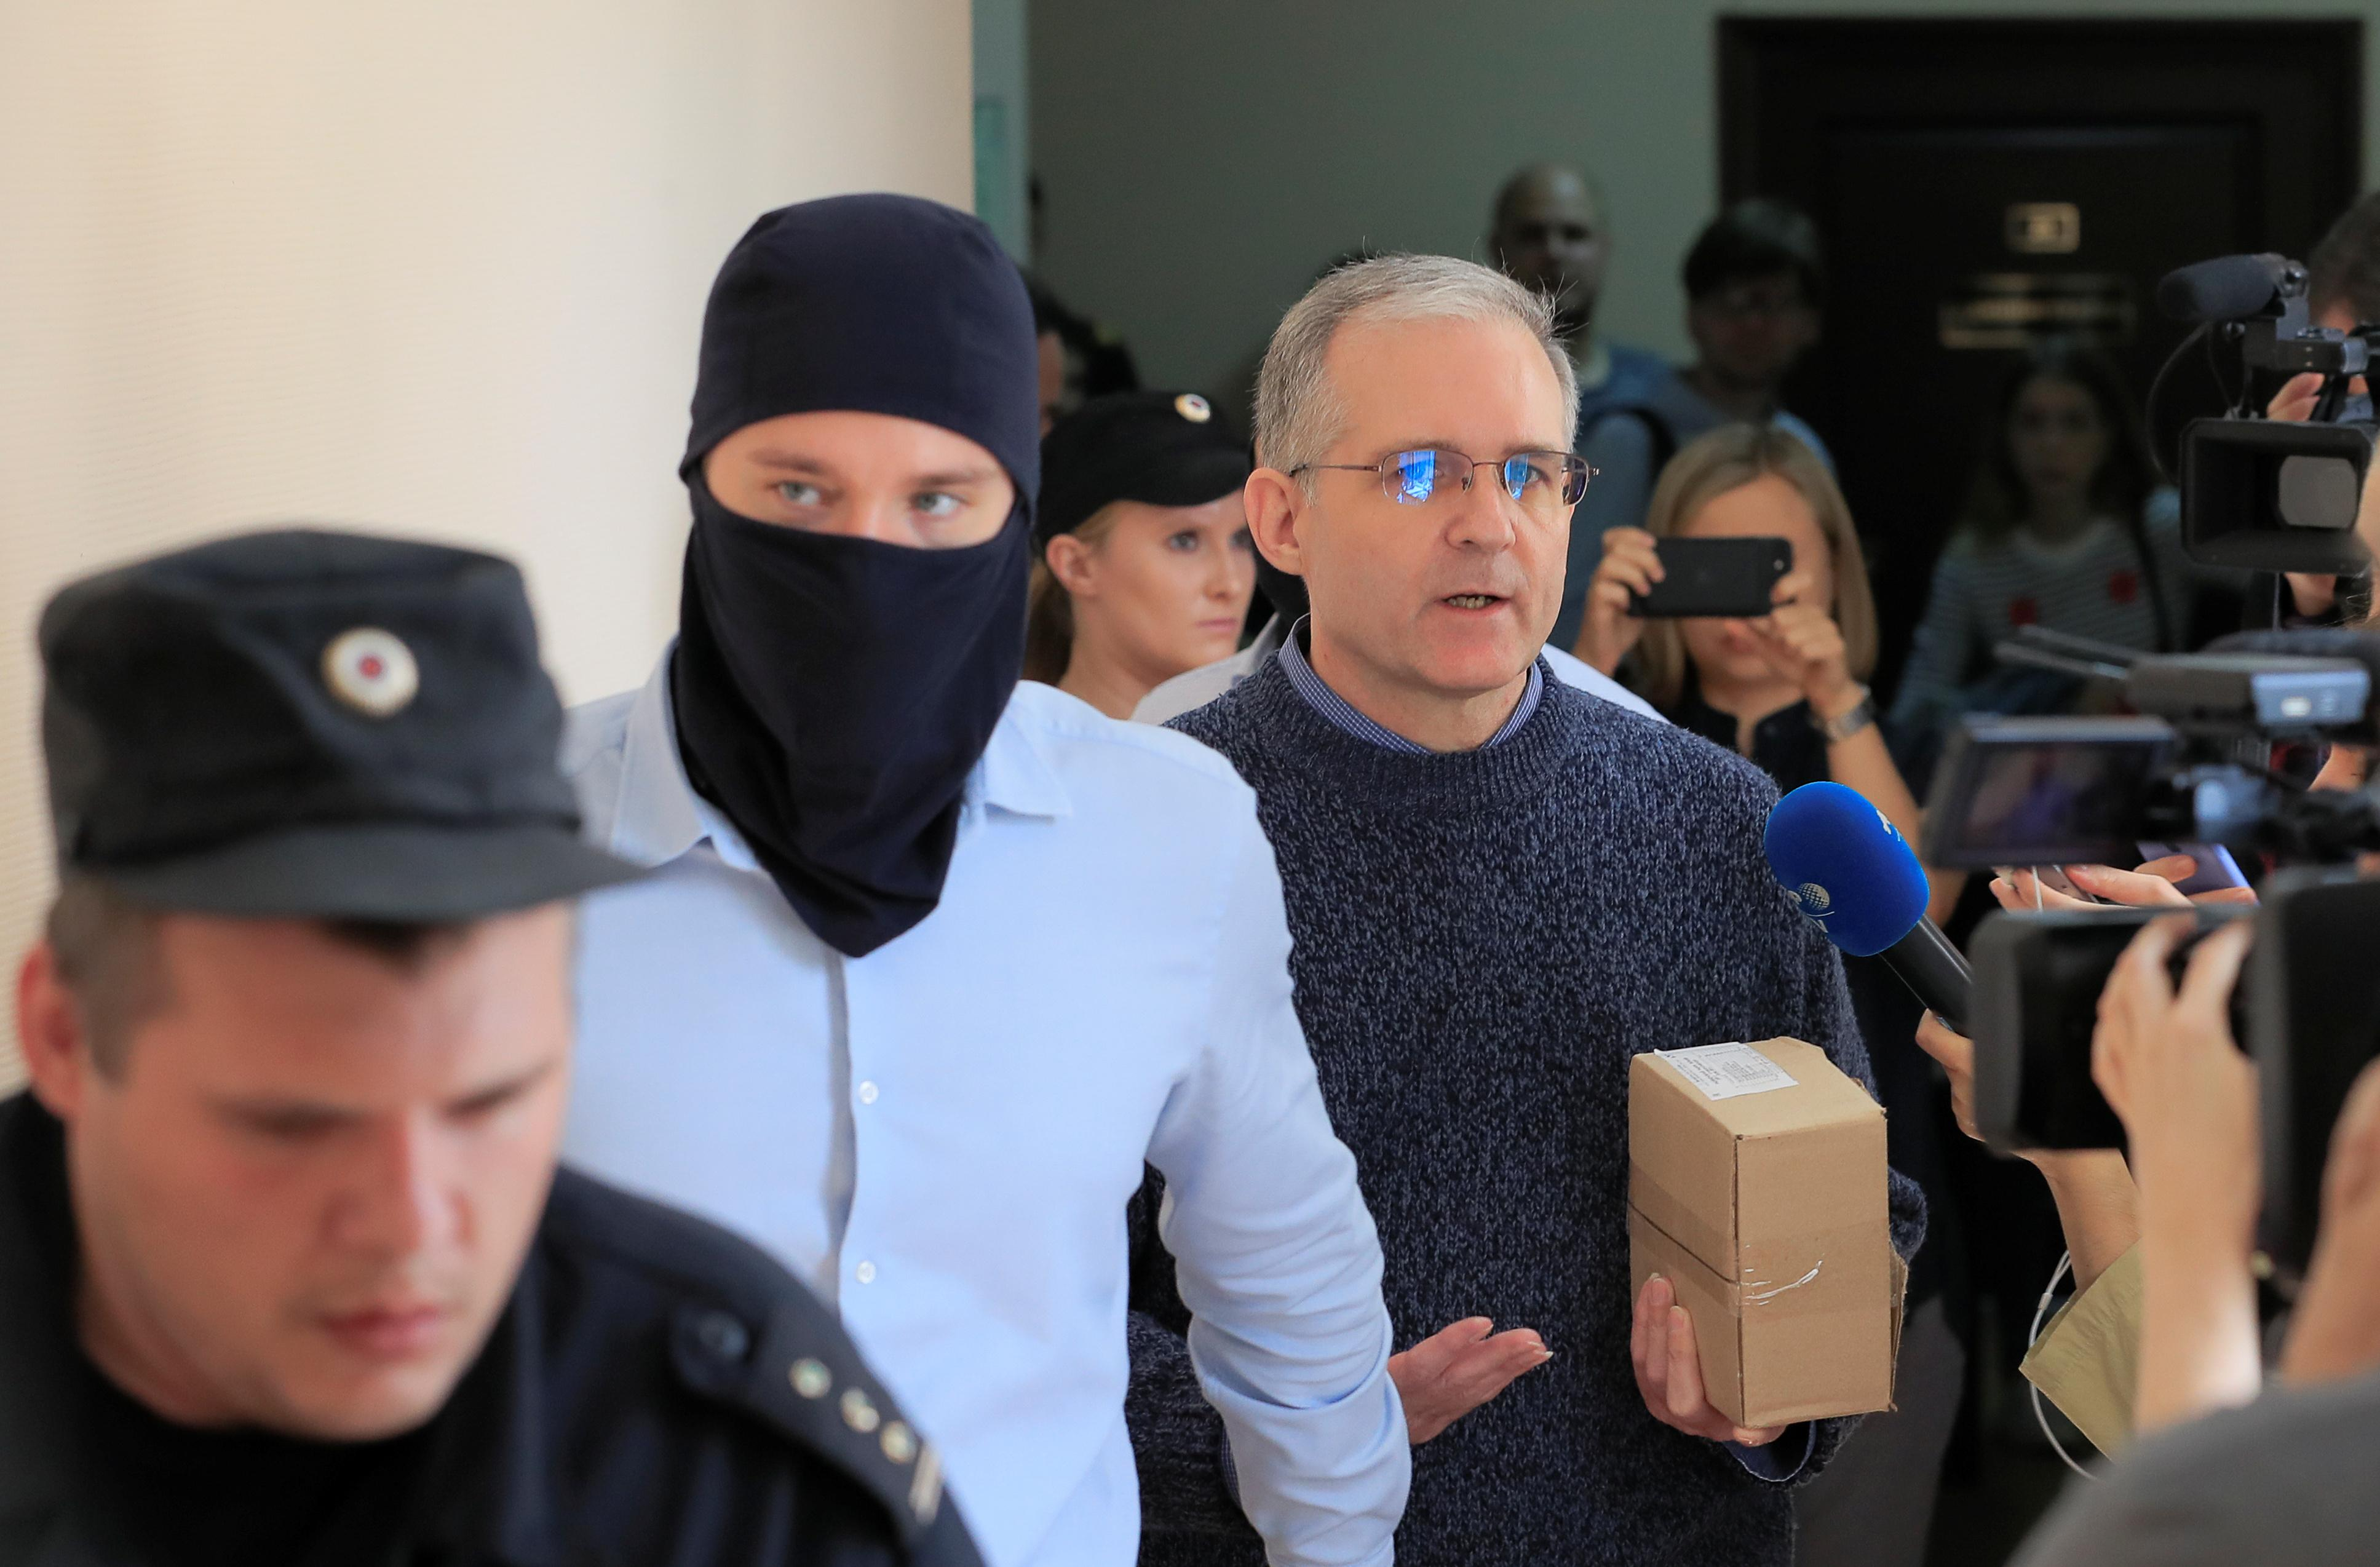 Russian court extends detention of ex-U.S. marine Whelan to end-October - Ifax